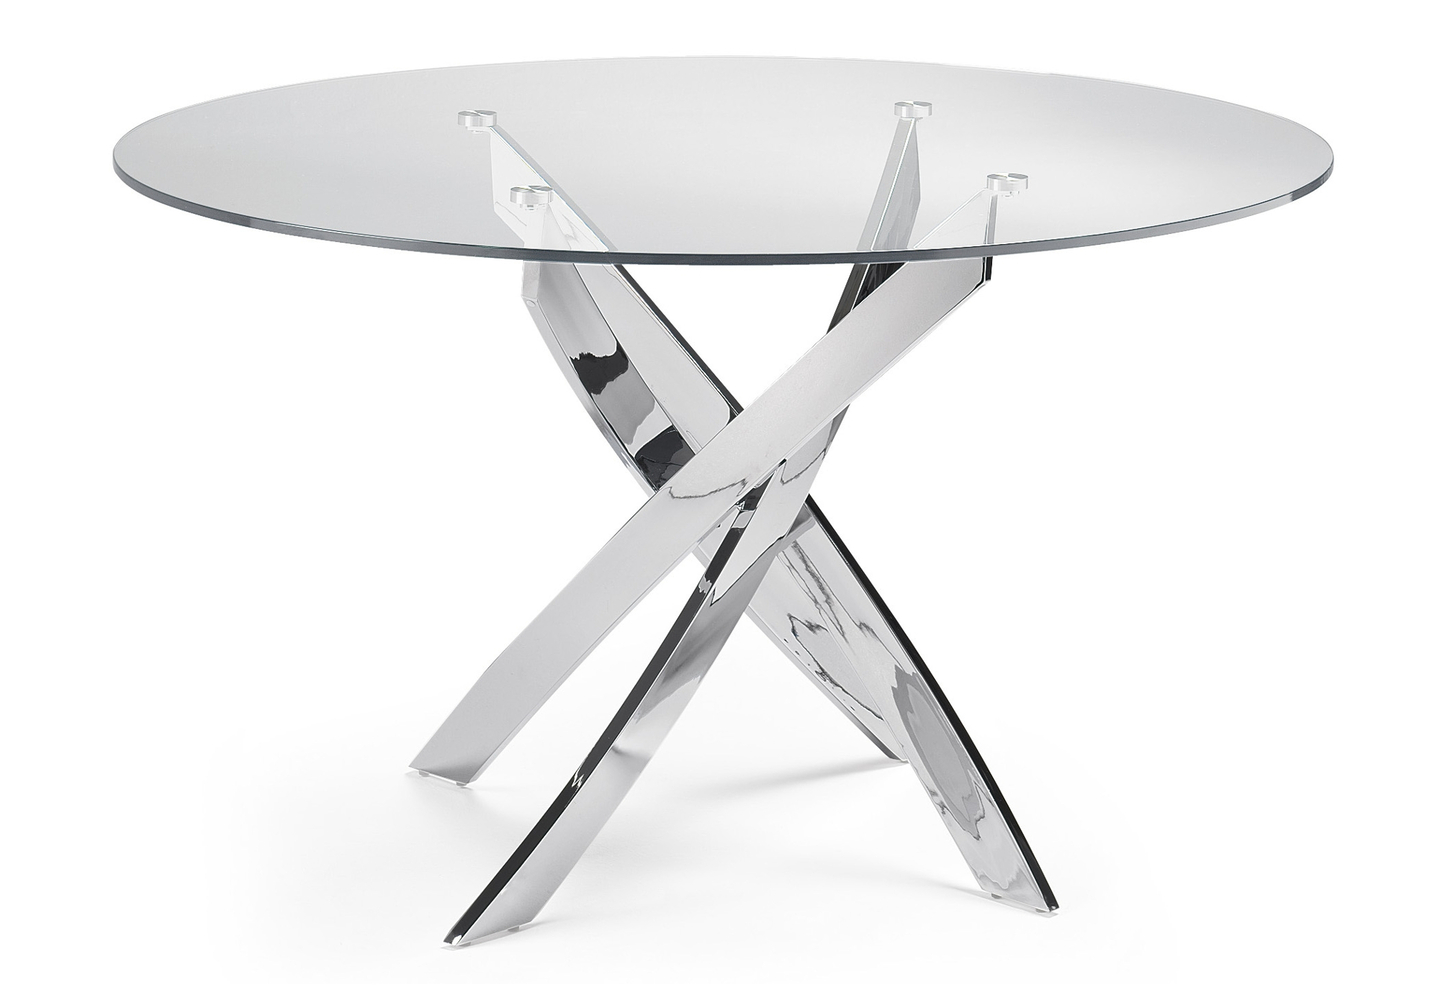 Table manger ronde chromé DESIGN-A.8